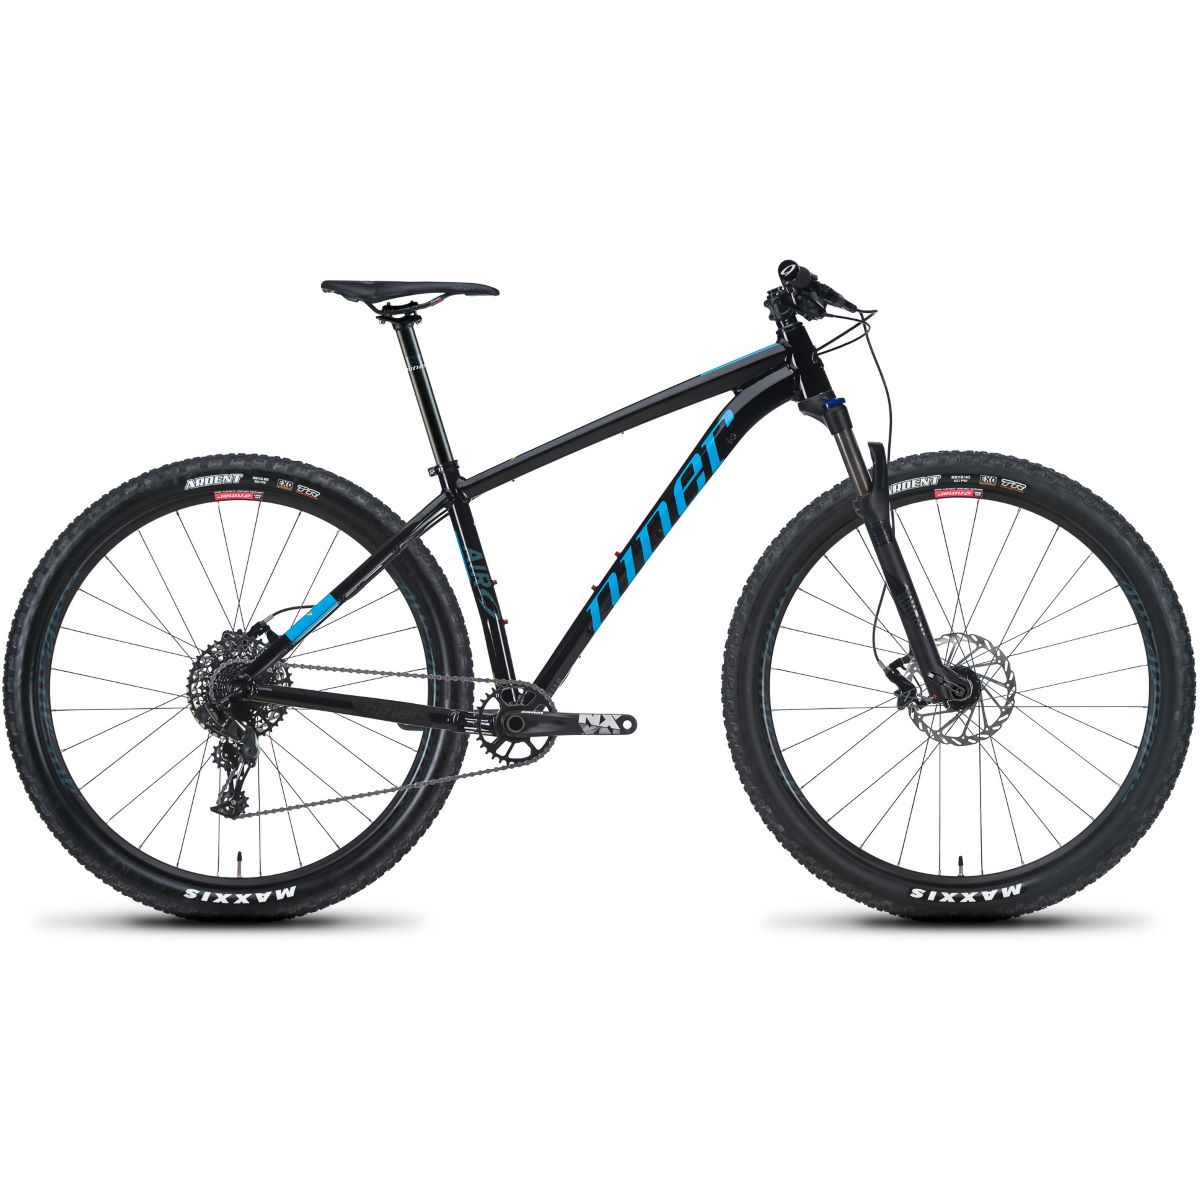 Niner AIR 9 1-Star Hardtail Bike - Bicicletas de MTB rígidas